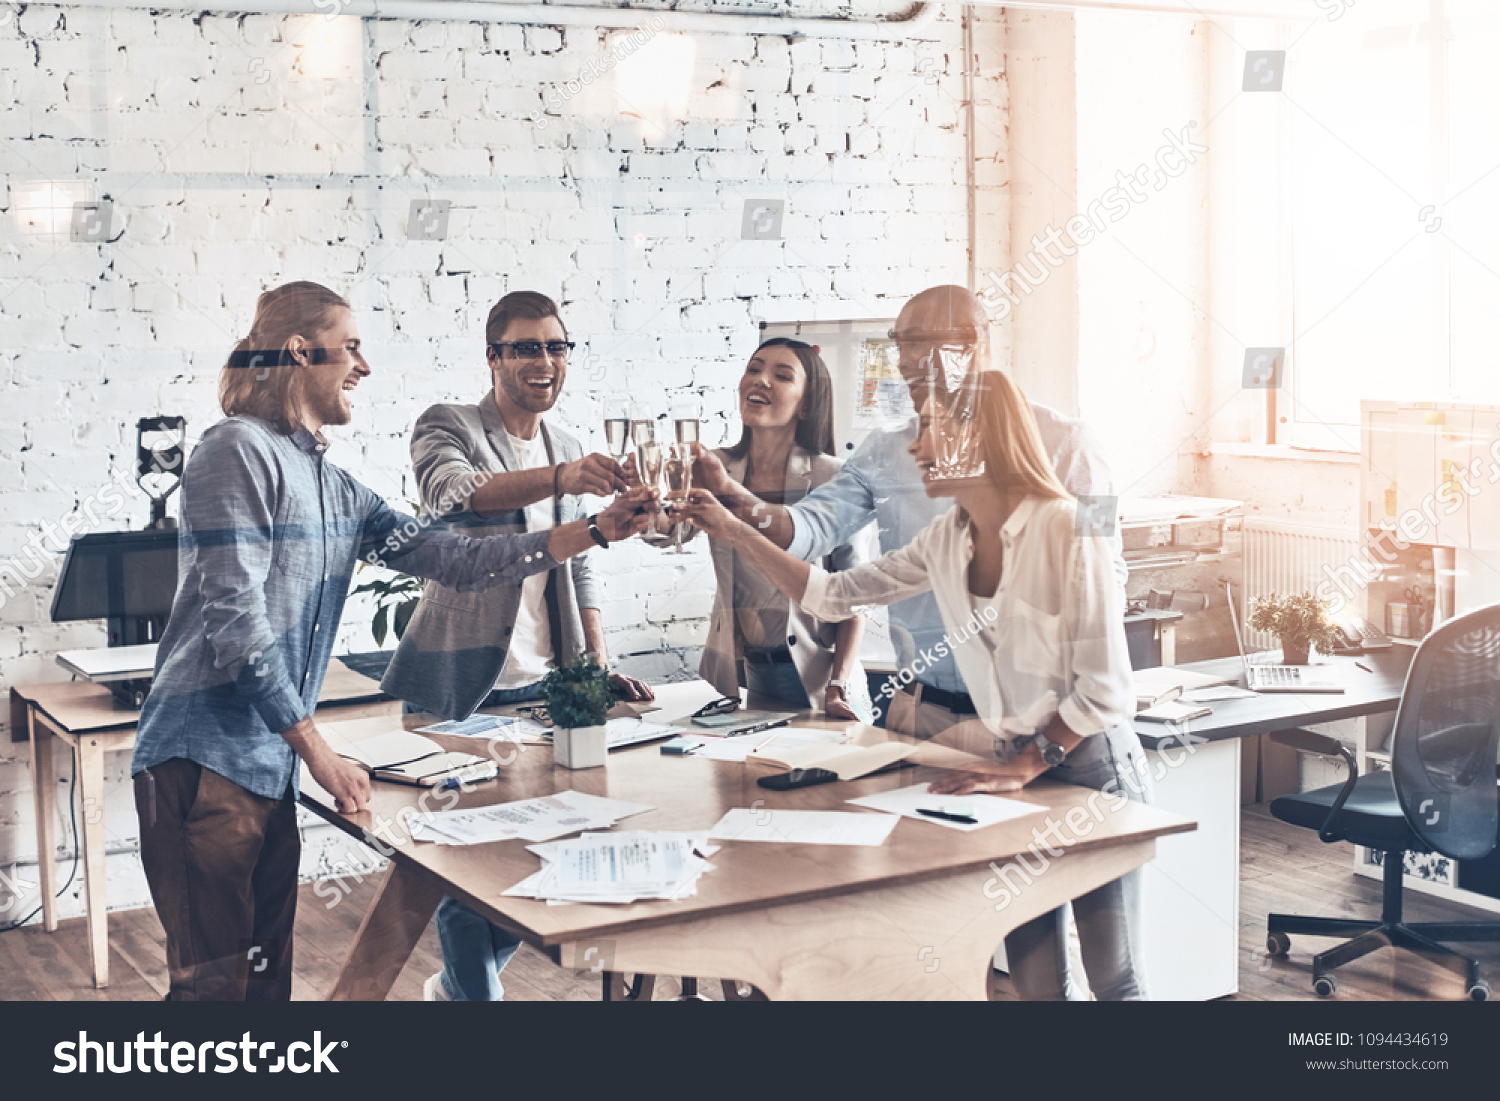 Toasting their success. Group of young business people toasting each other and smiling while standing behind the glass wall in the board room #1094434619